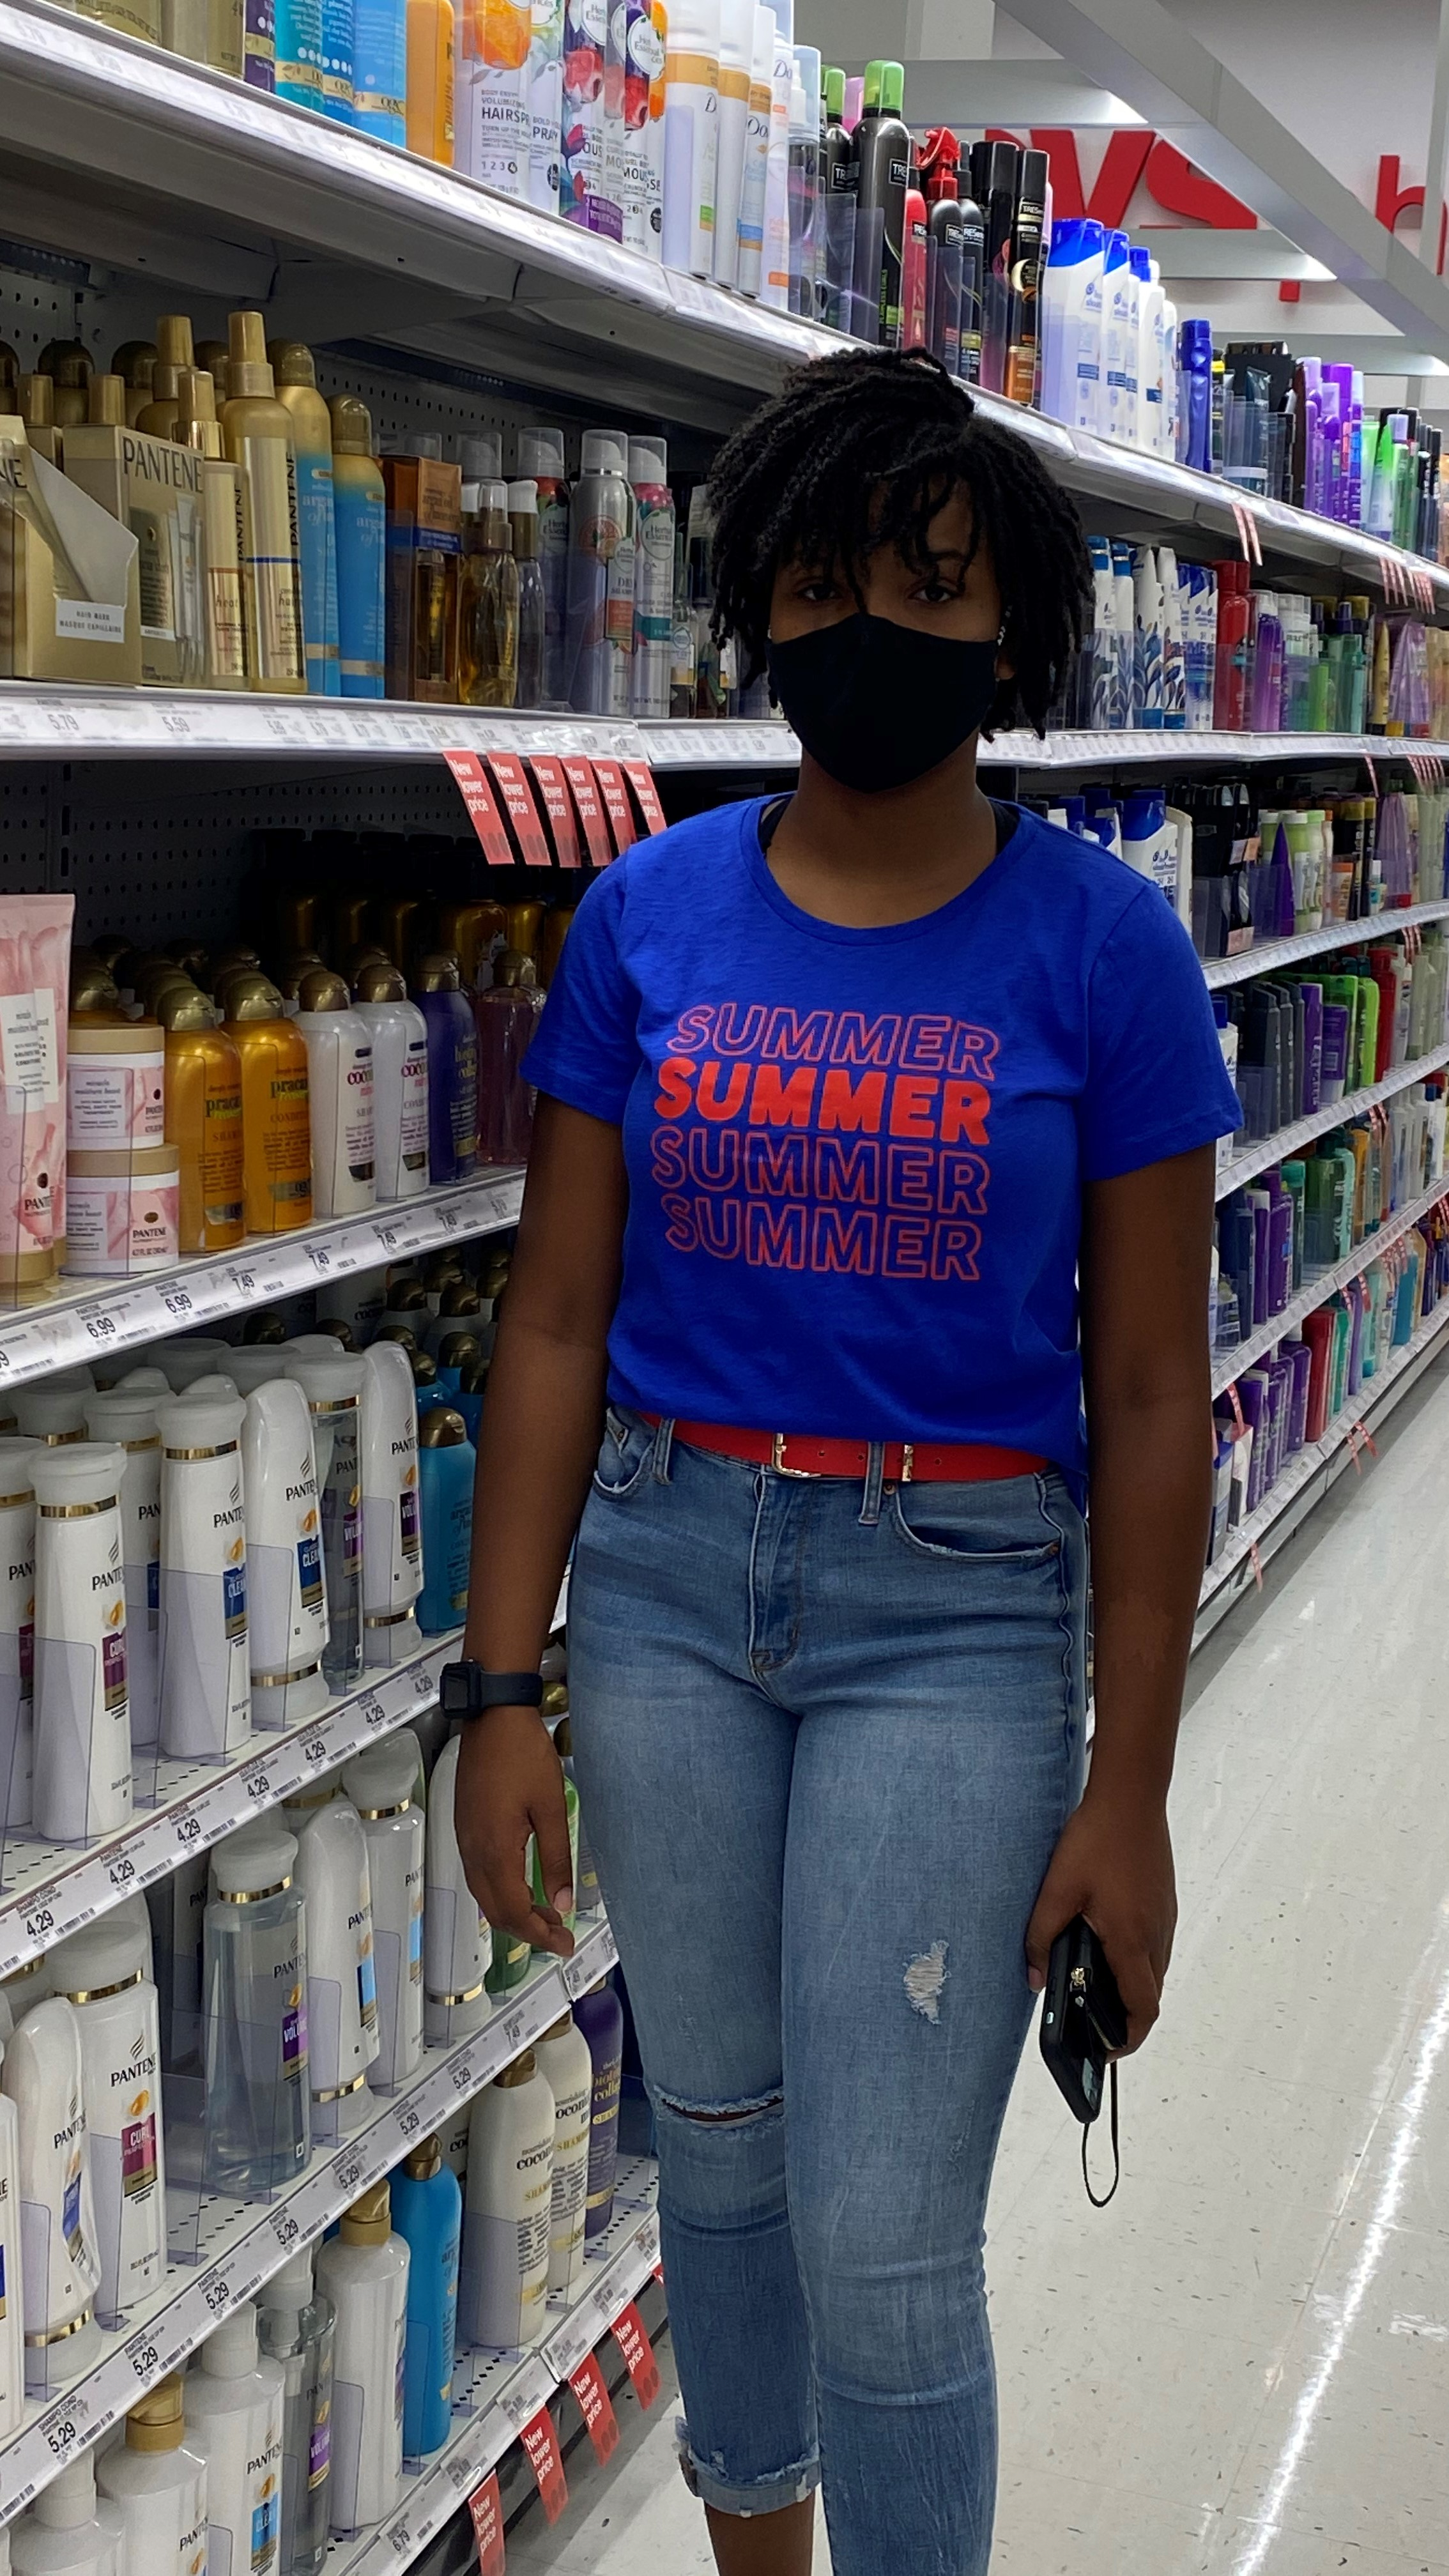 black woman standing in shampoo aisle at CVS drugstore